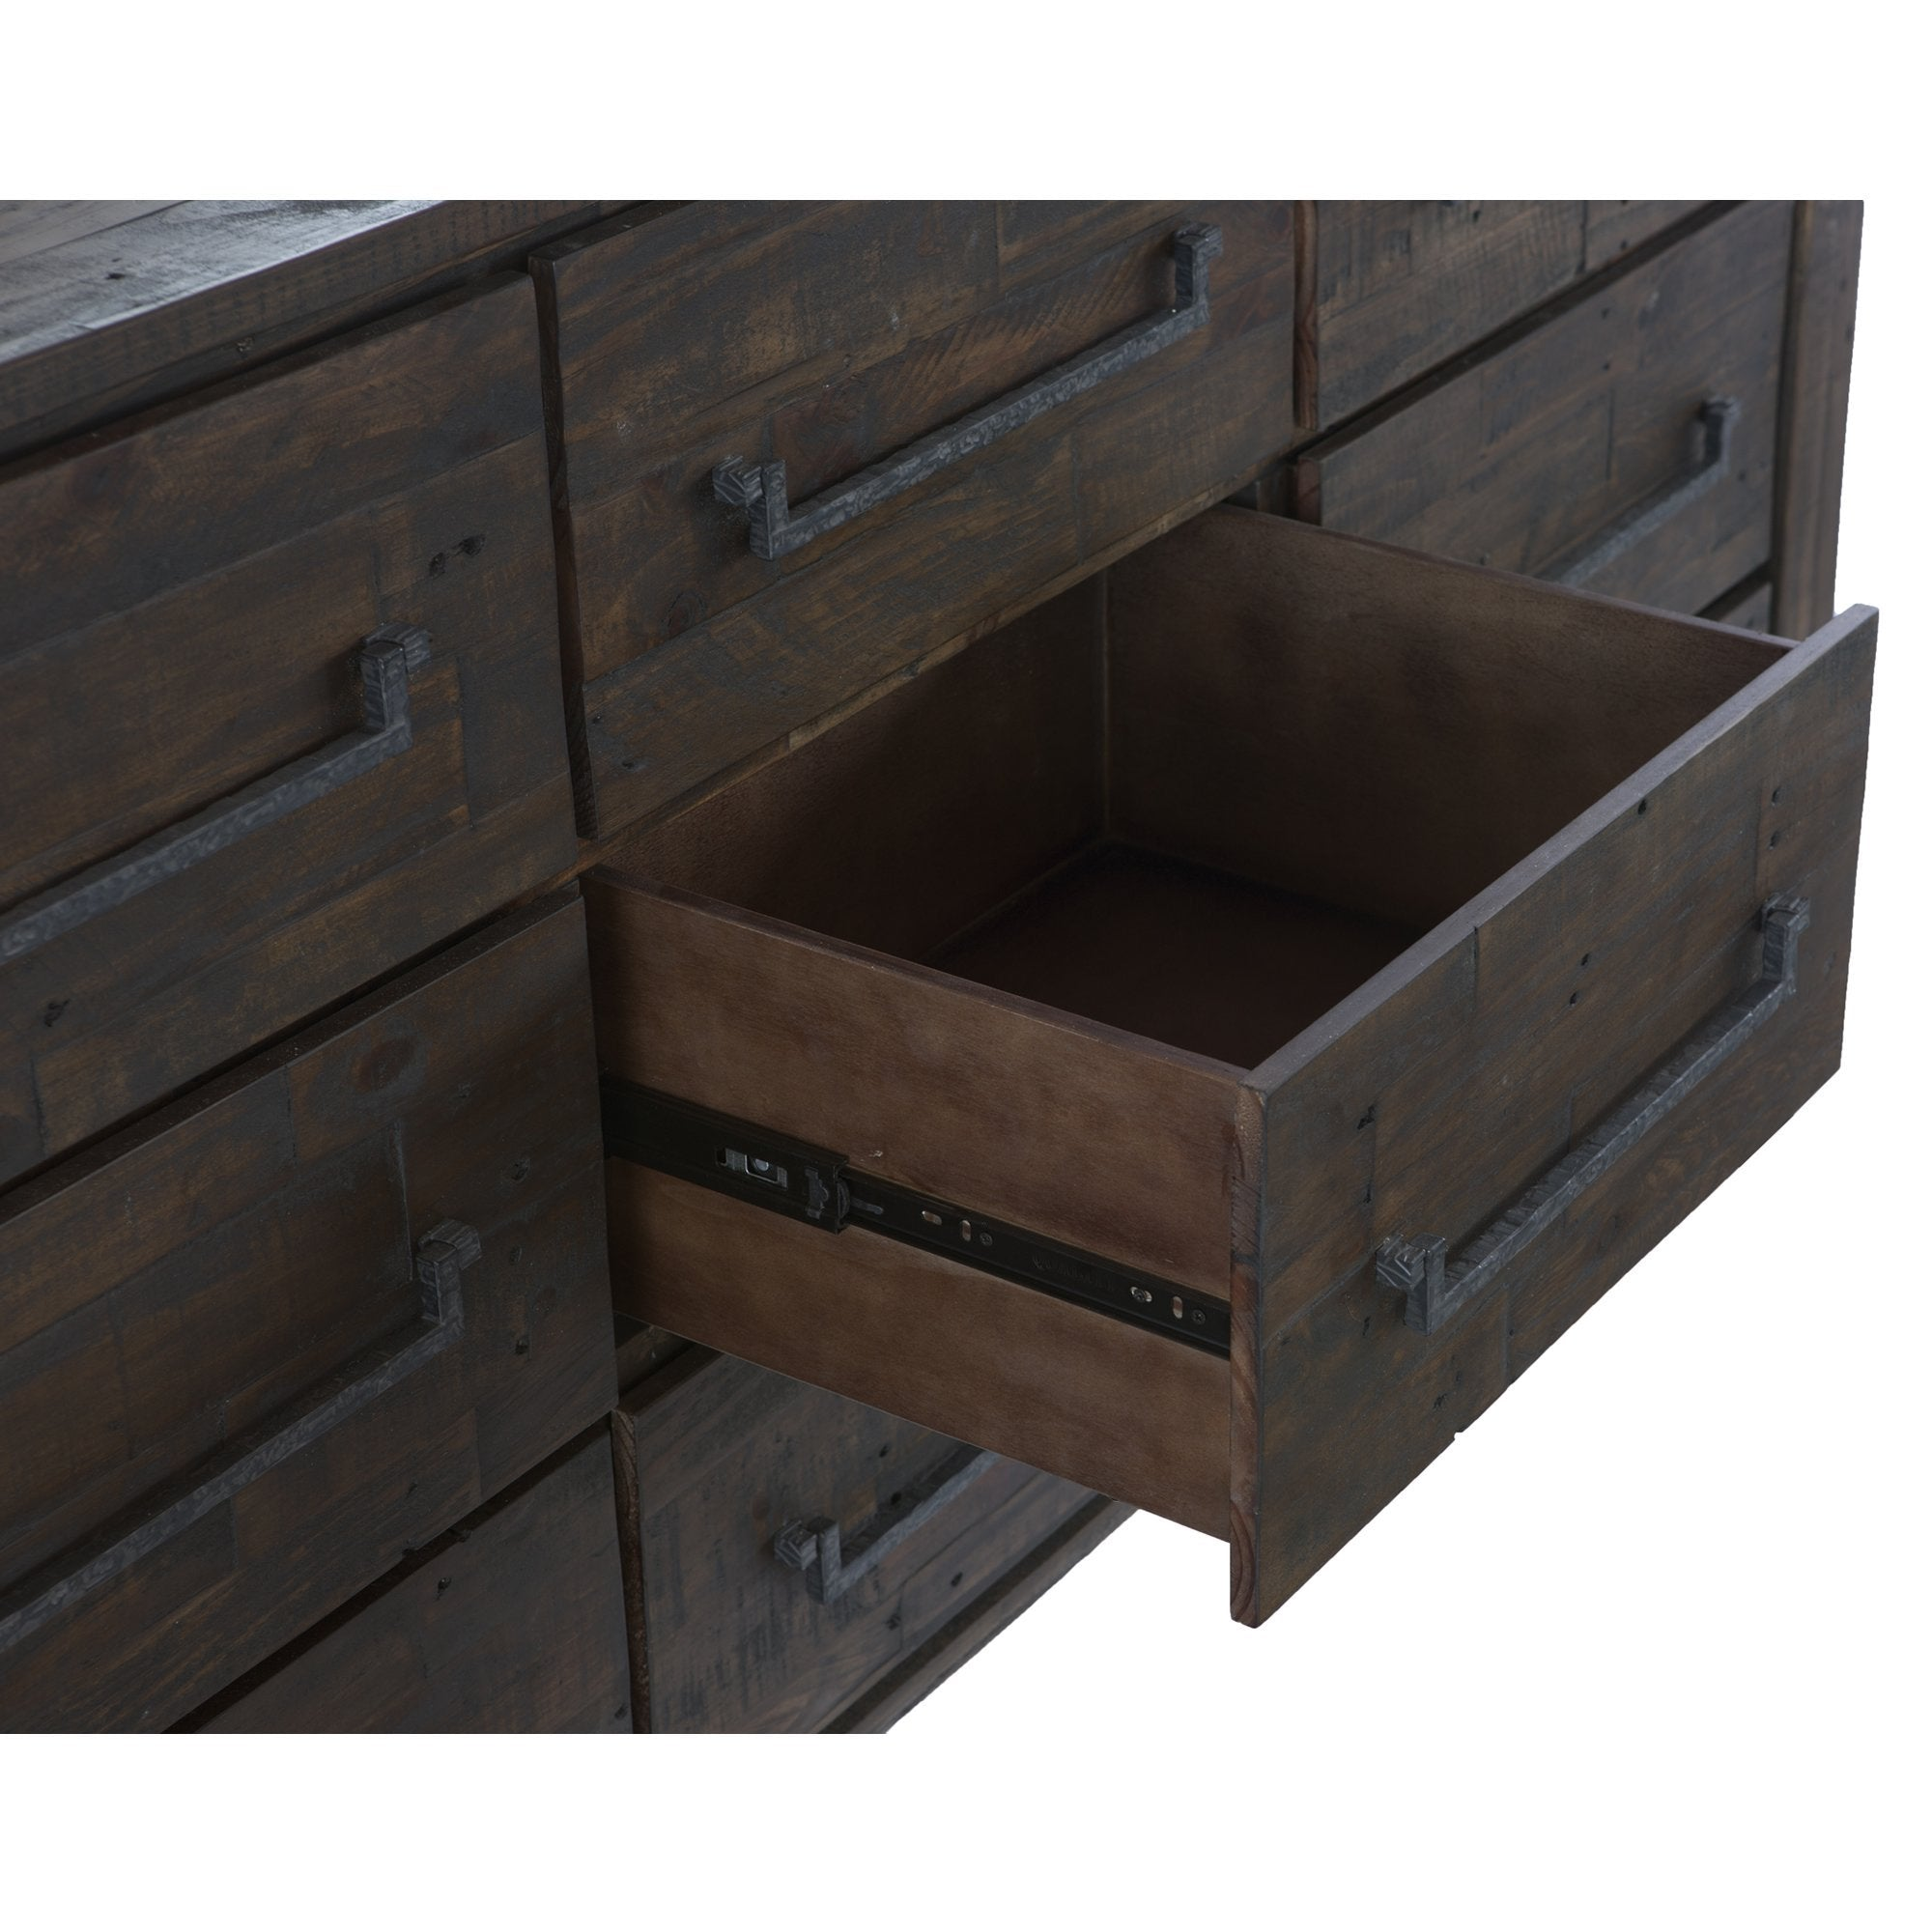 Rustic Contemporary Dresser London Weathered Brown Wood